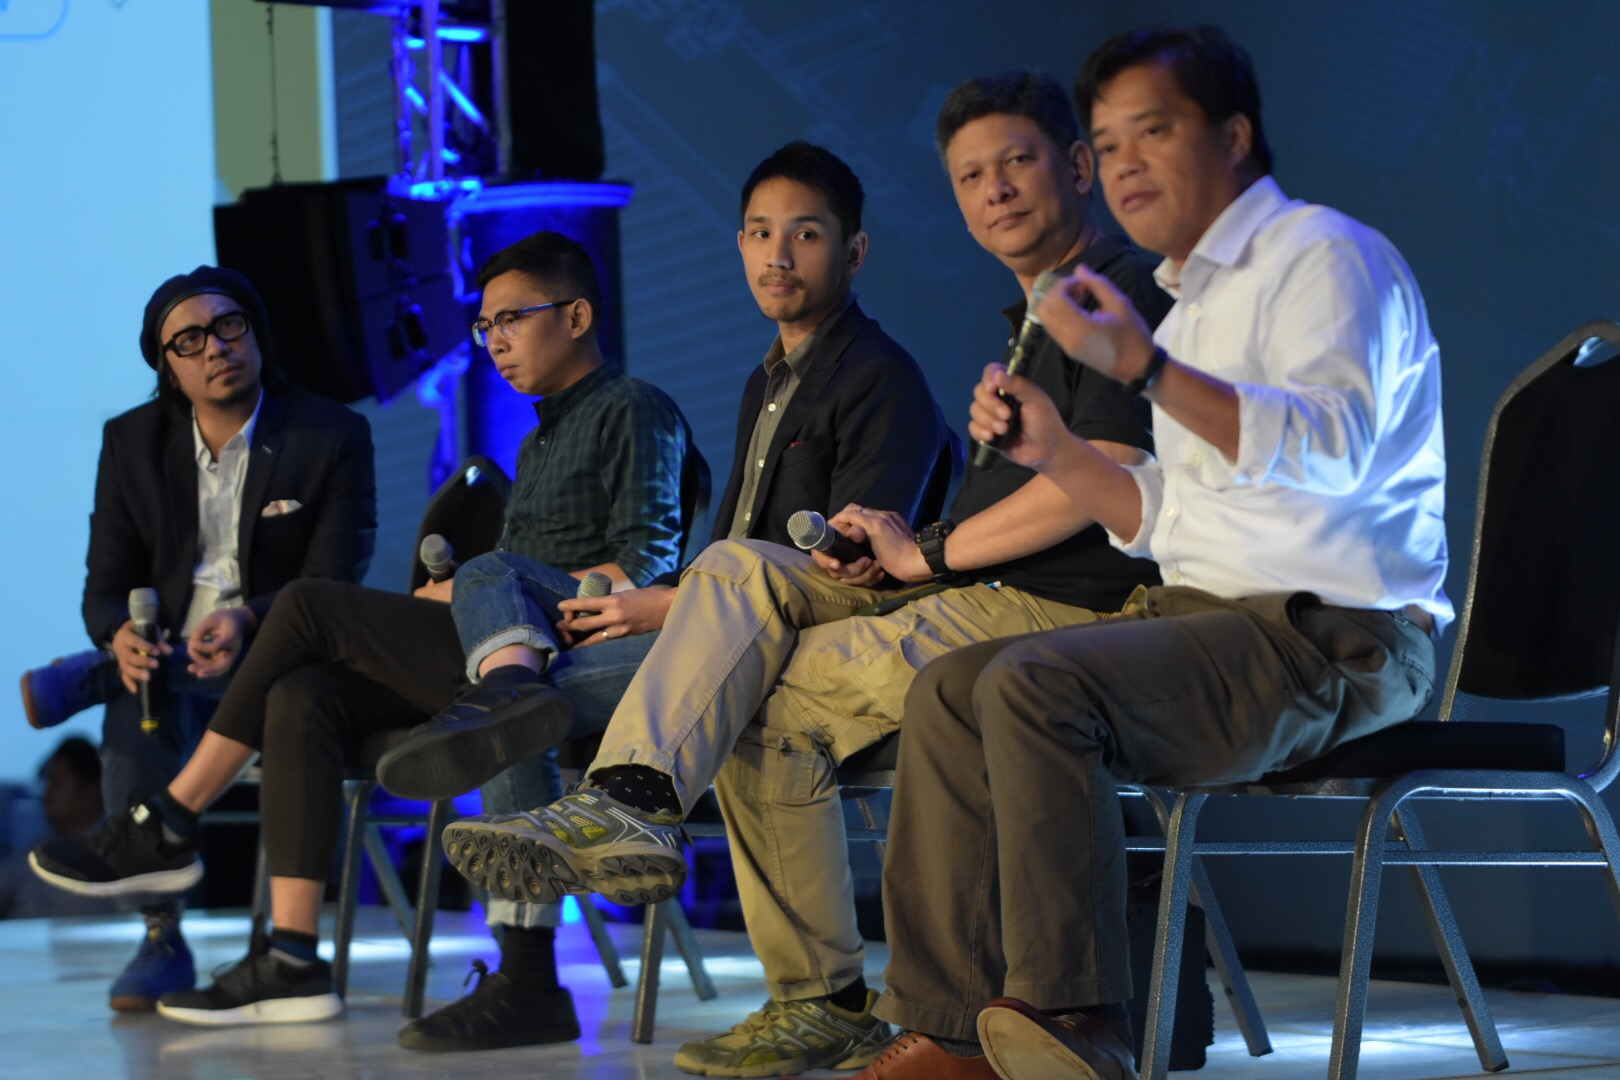 THE PANELISTS. From L to R: Lourd de Veyra, Tonyo Cruz, Leloy Claudio, Ed Lingao, and Caloy Conde during the Rappler forum on November 28. Photo by Leanne Jazul/Rappler